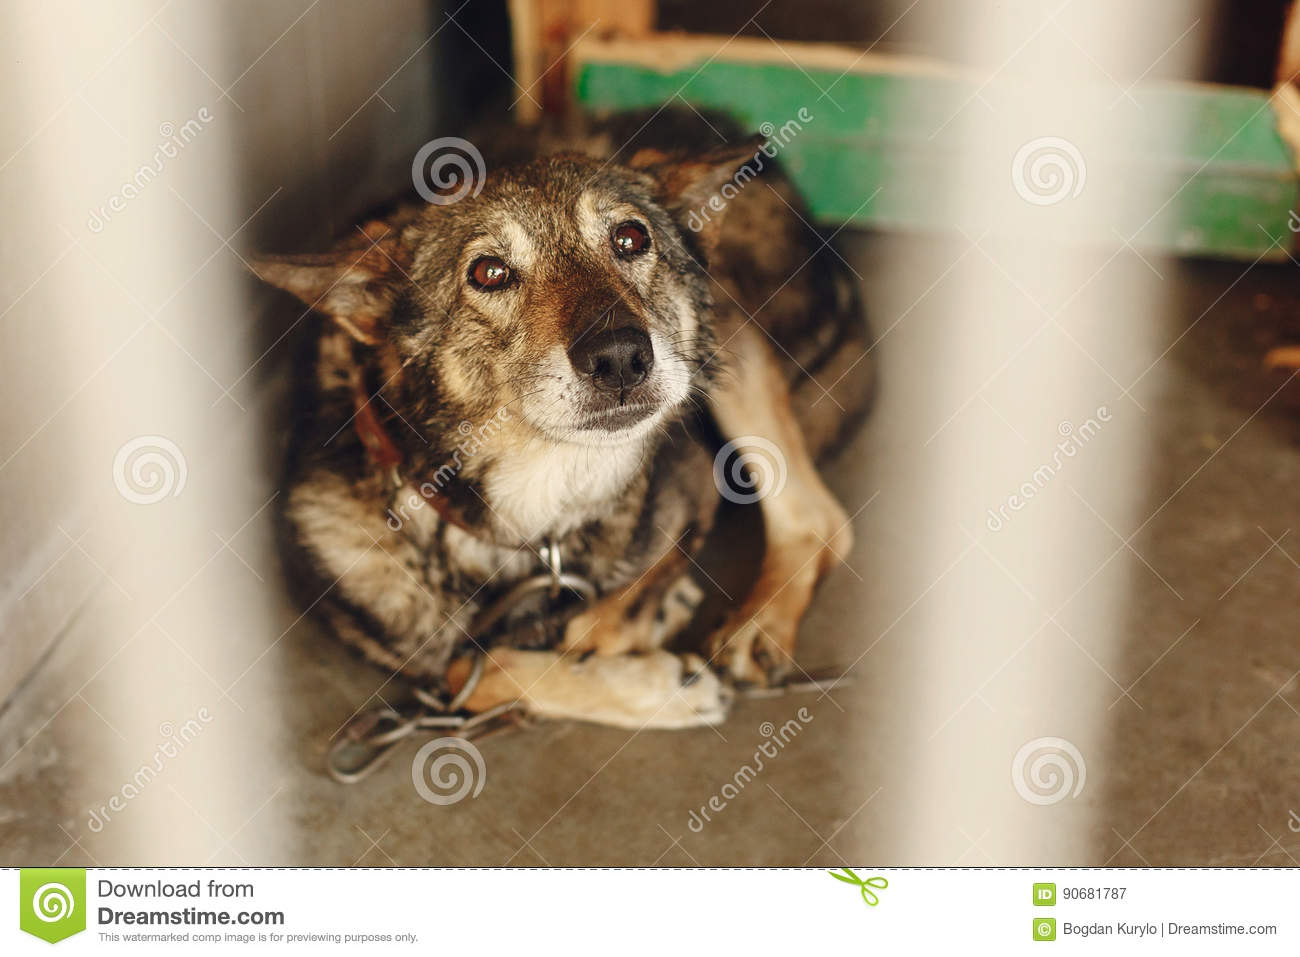 Scared dog in shelter cage with sad crying eyes emotional mome stock image image 90681787 - Dogs for small spaces concept ...